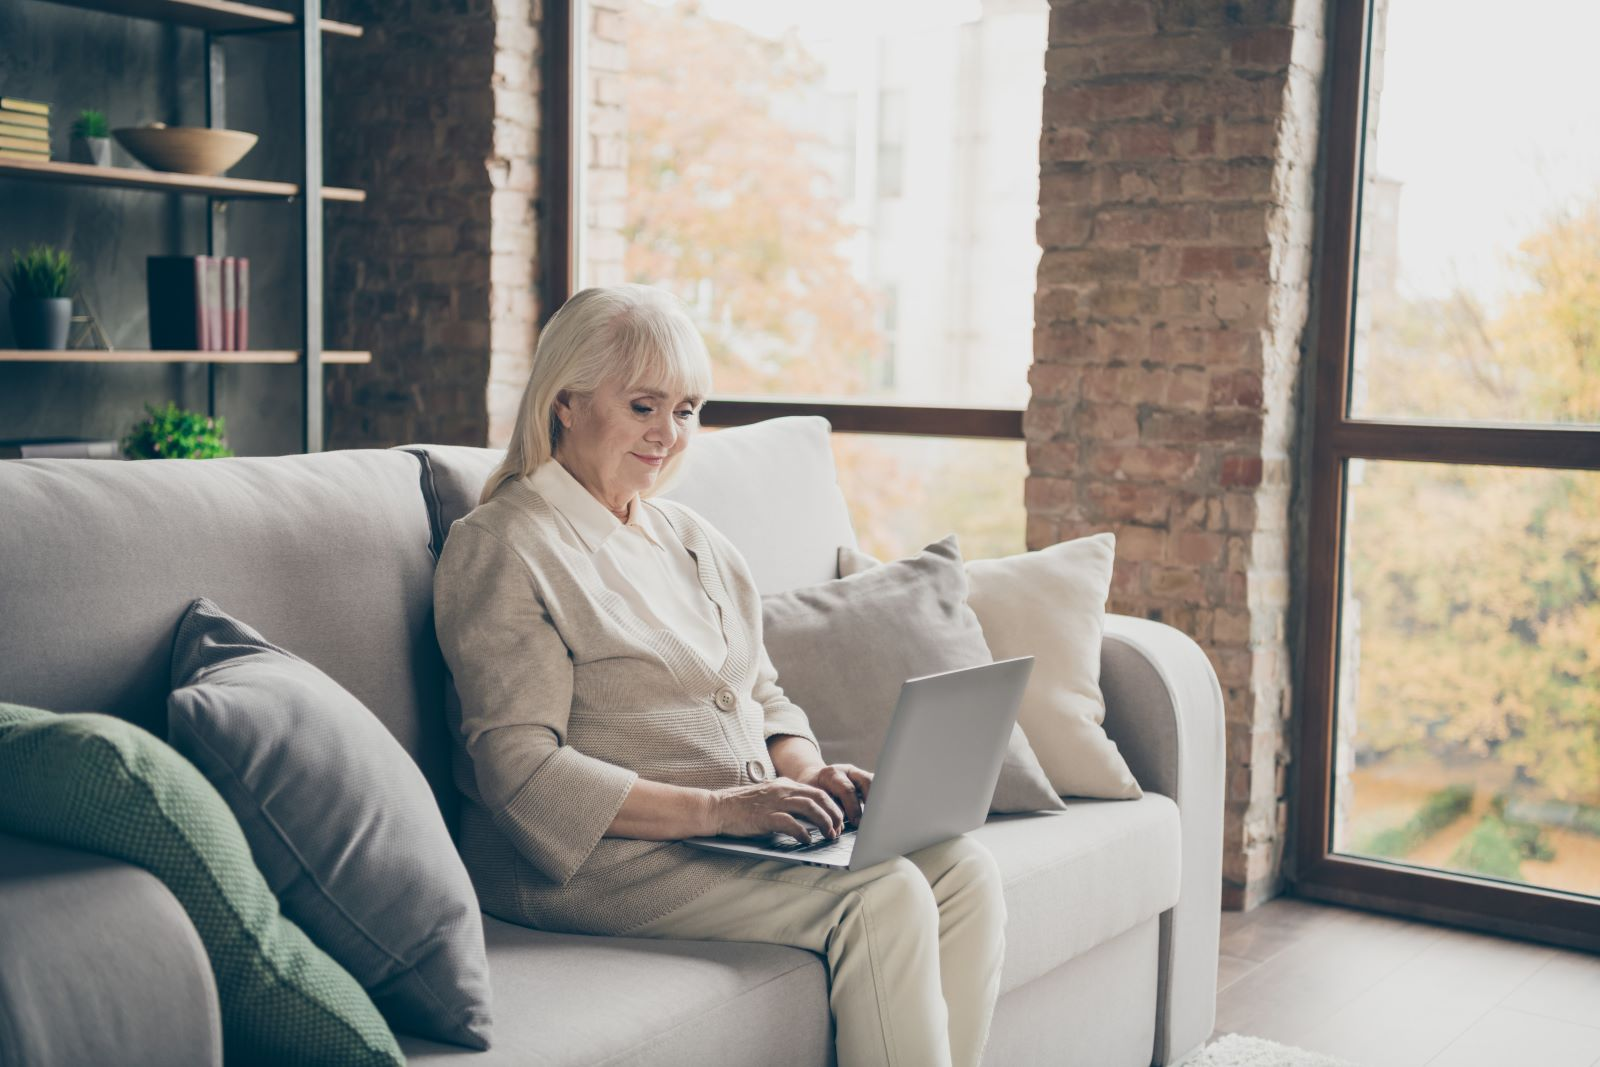 Senior woman sitting on the couch smiling as she types on her laptop